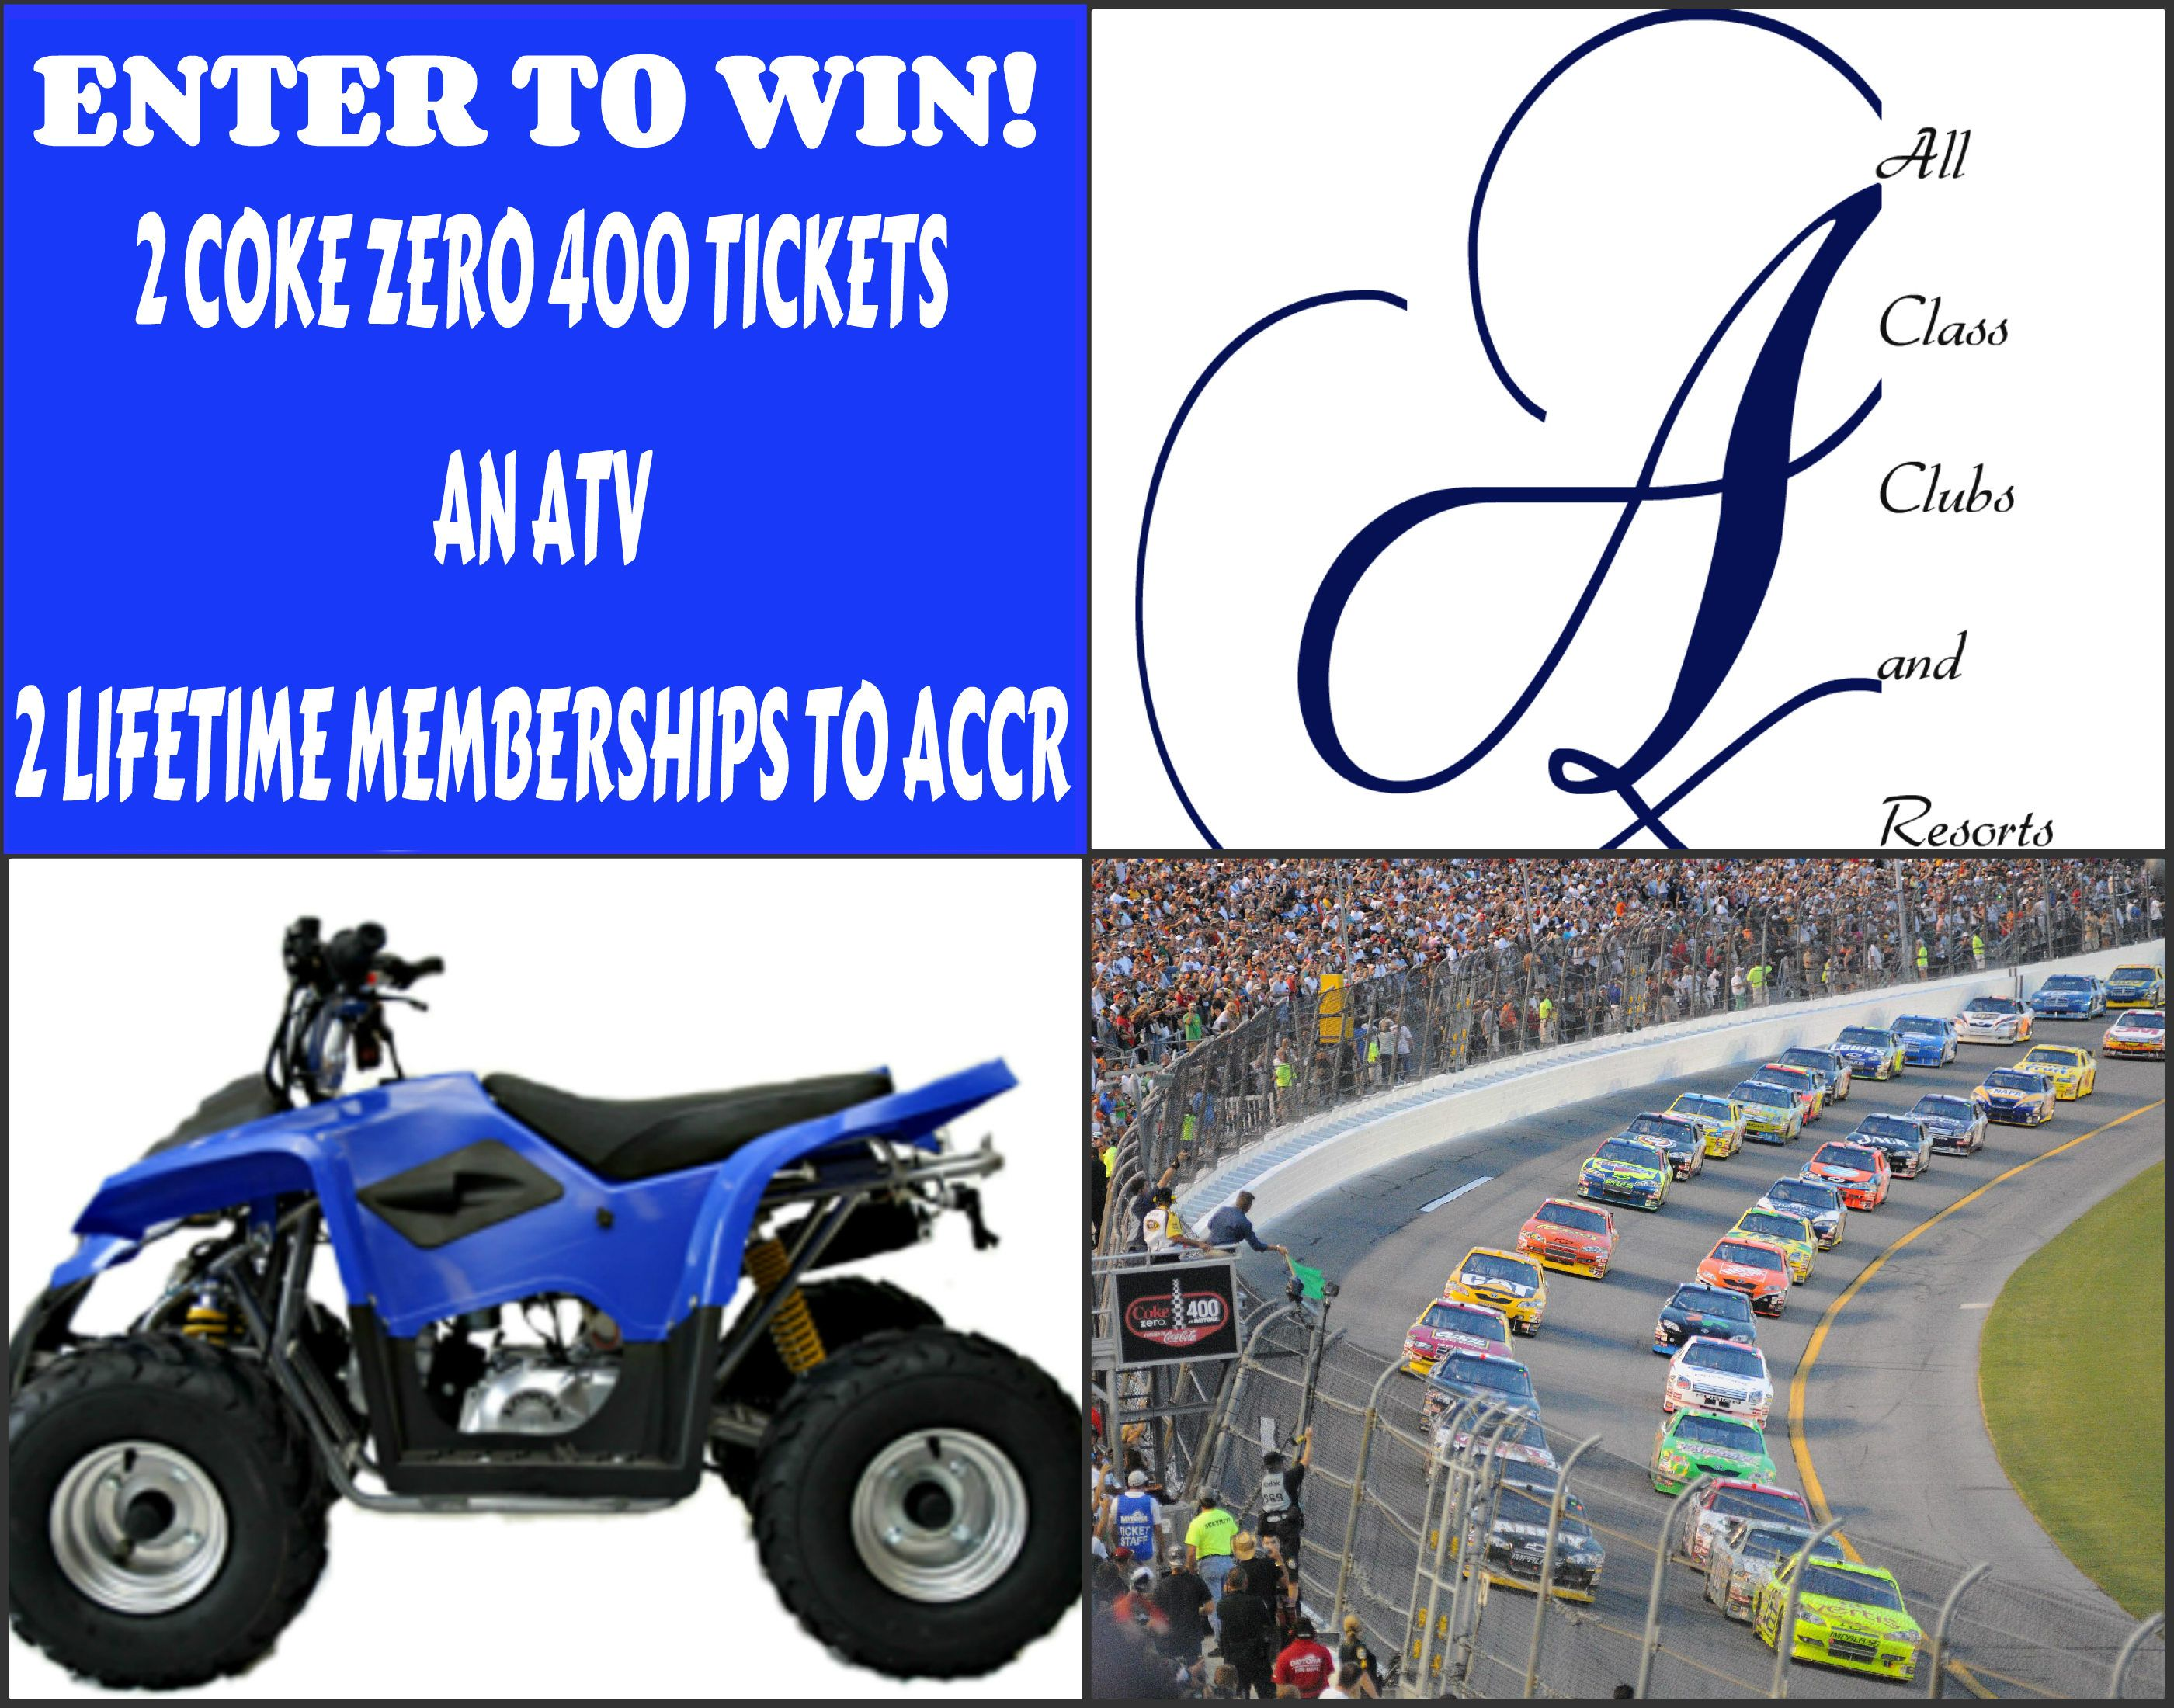 Make sure to visit our page and enter to win an #ATV! All who enter by July 1st are qualified to #win additional #prizes including 2 tickets to the Coke Zero 400 and 2 lifetime memberships to All Class Clubs and Resorts. Read more about it on our #blog!